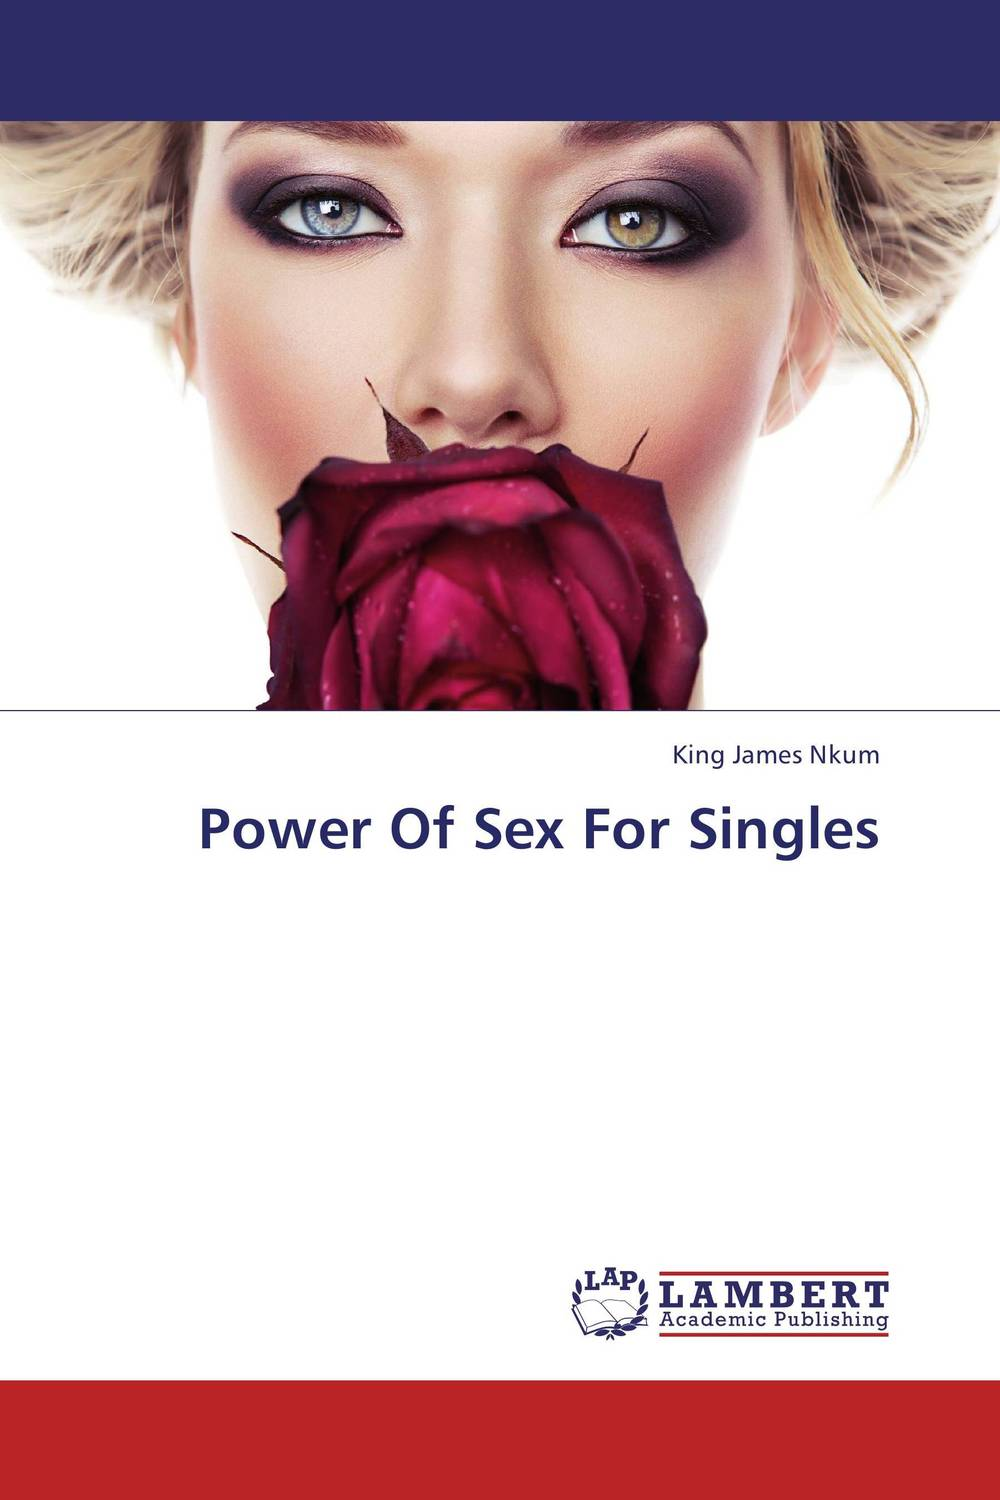 Power Of Sex For Singles miguel delatorre a a lily among the thorns imagining a new christian sexuality